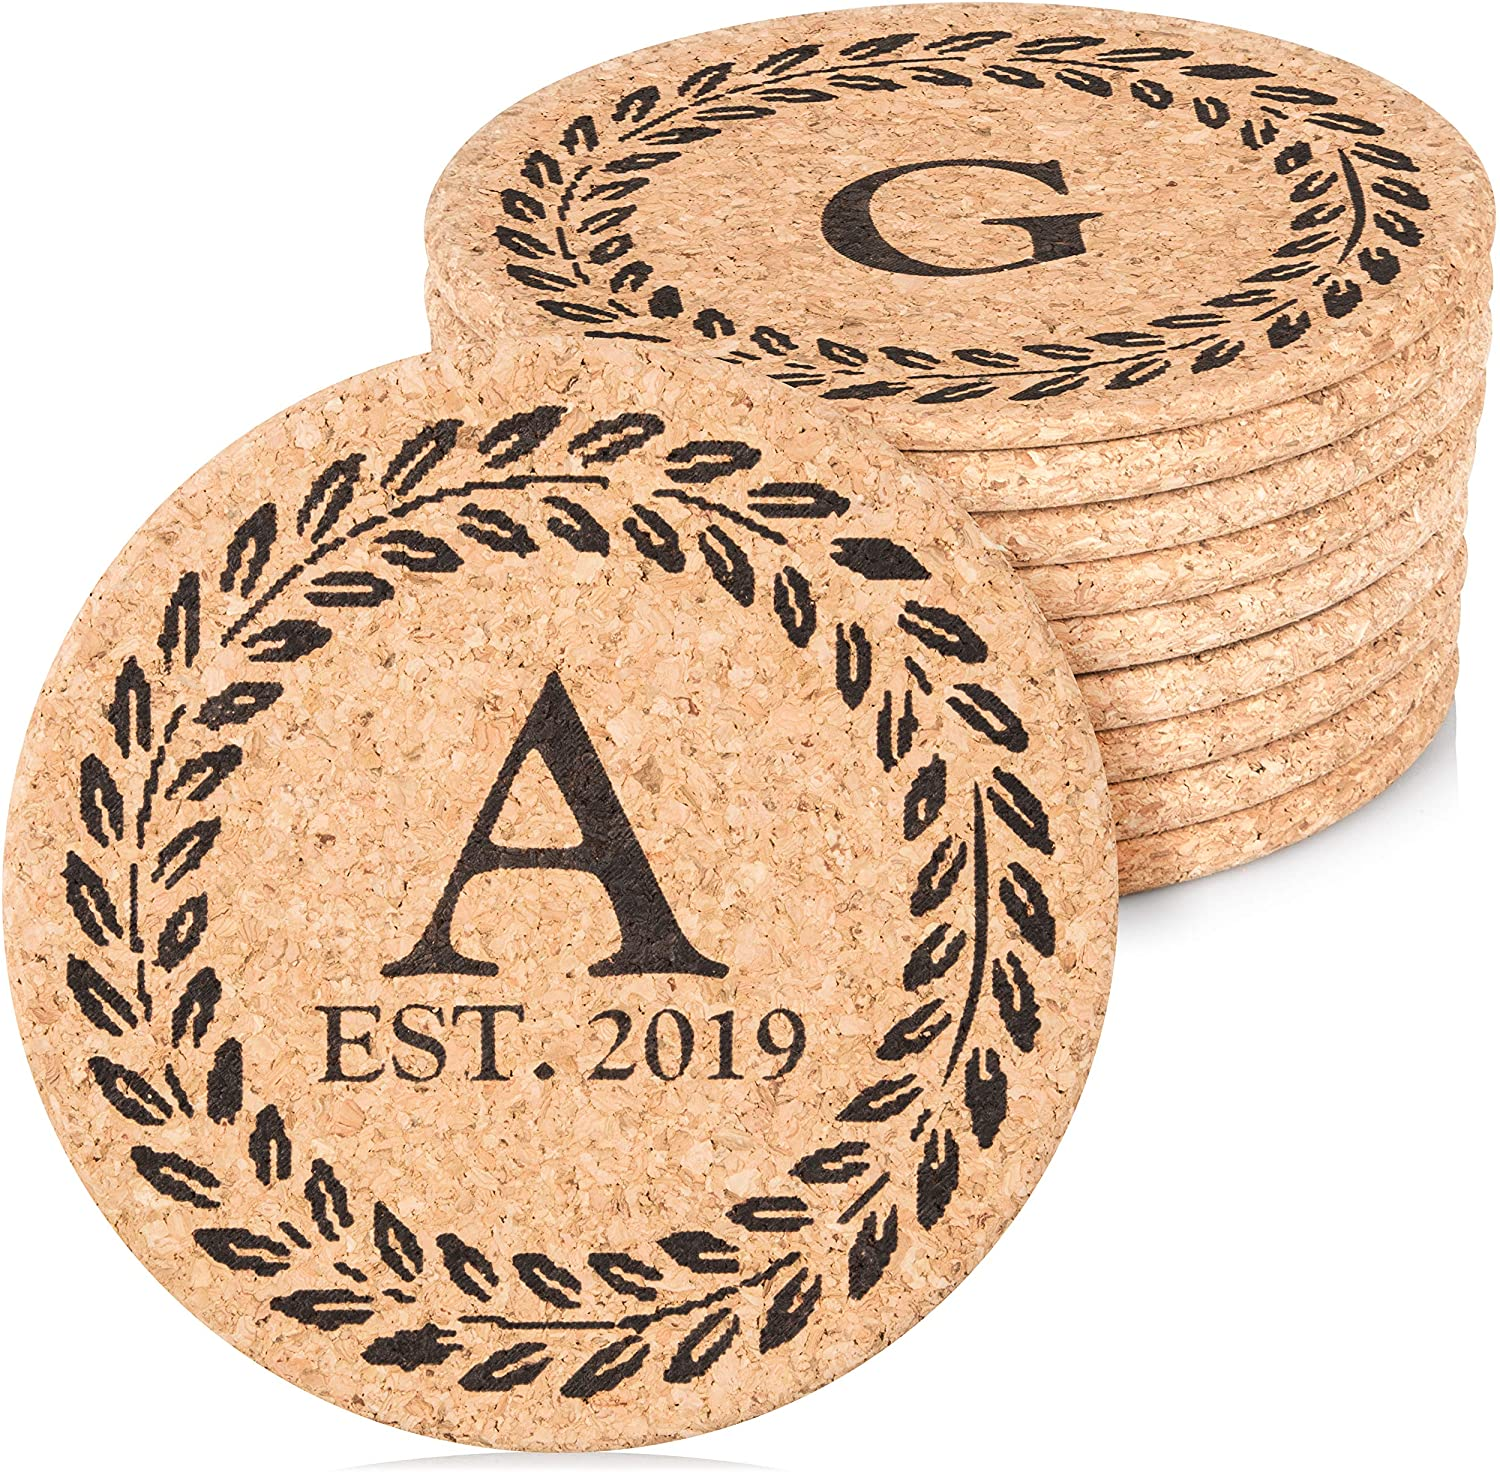 anniversary-gifts-for-parents-personalized-cork-hot-plates